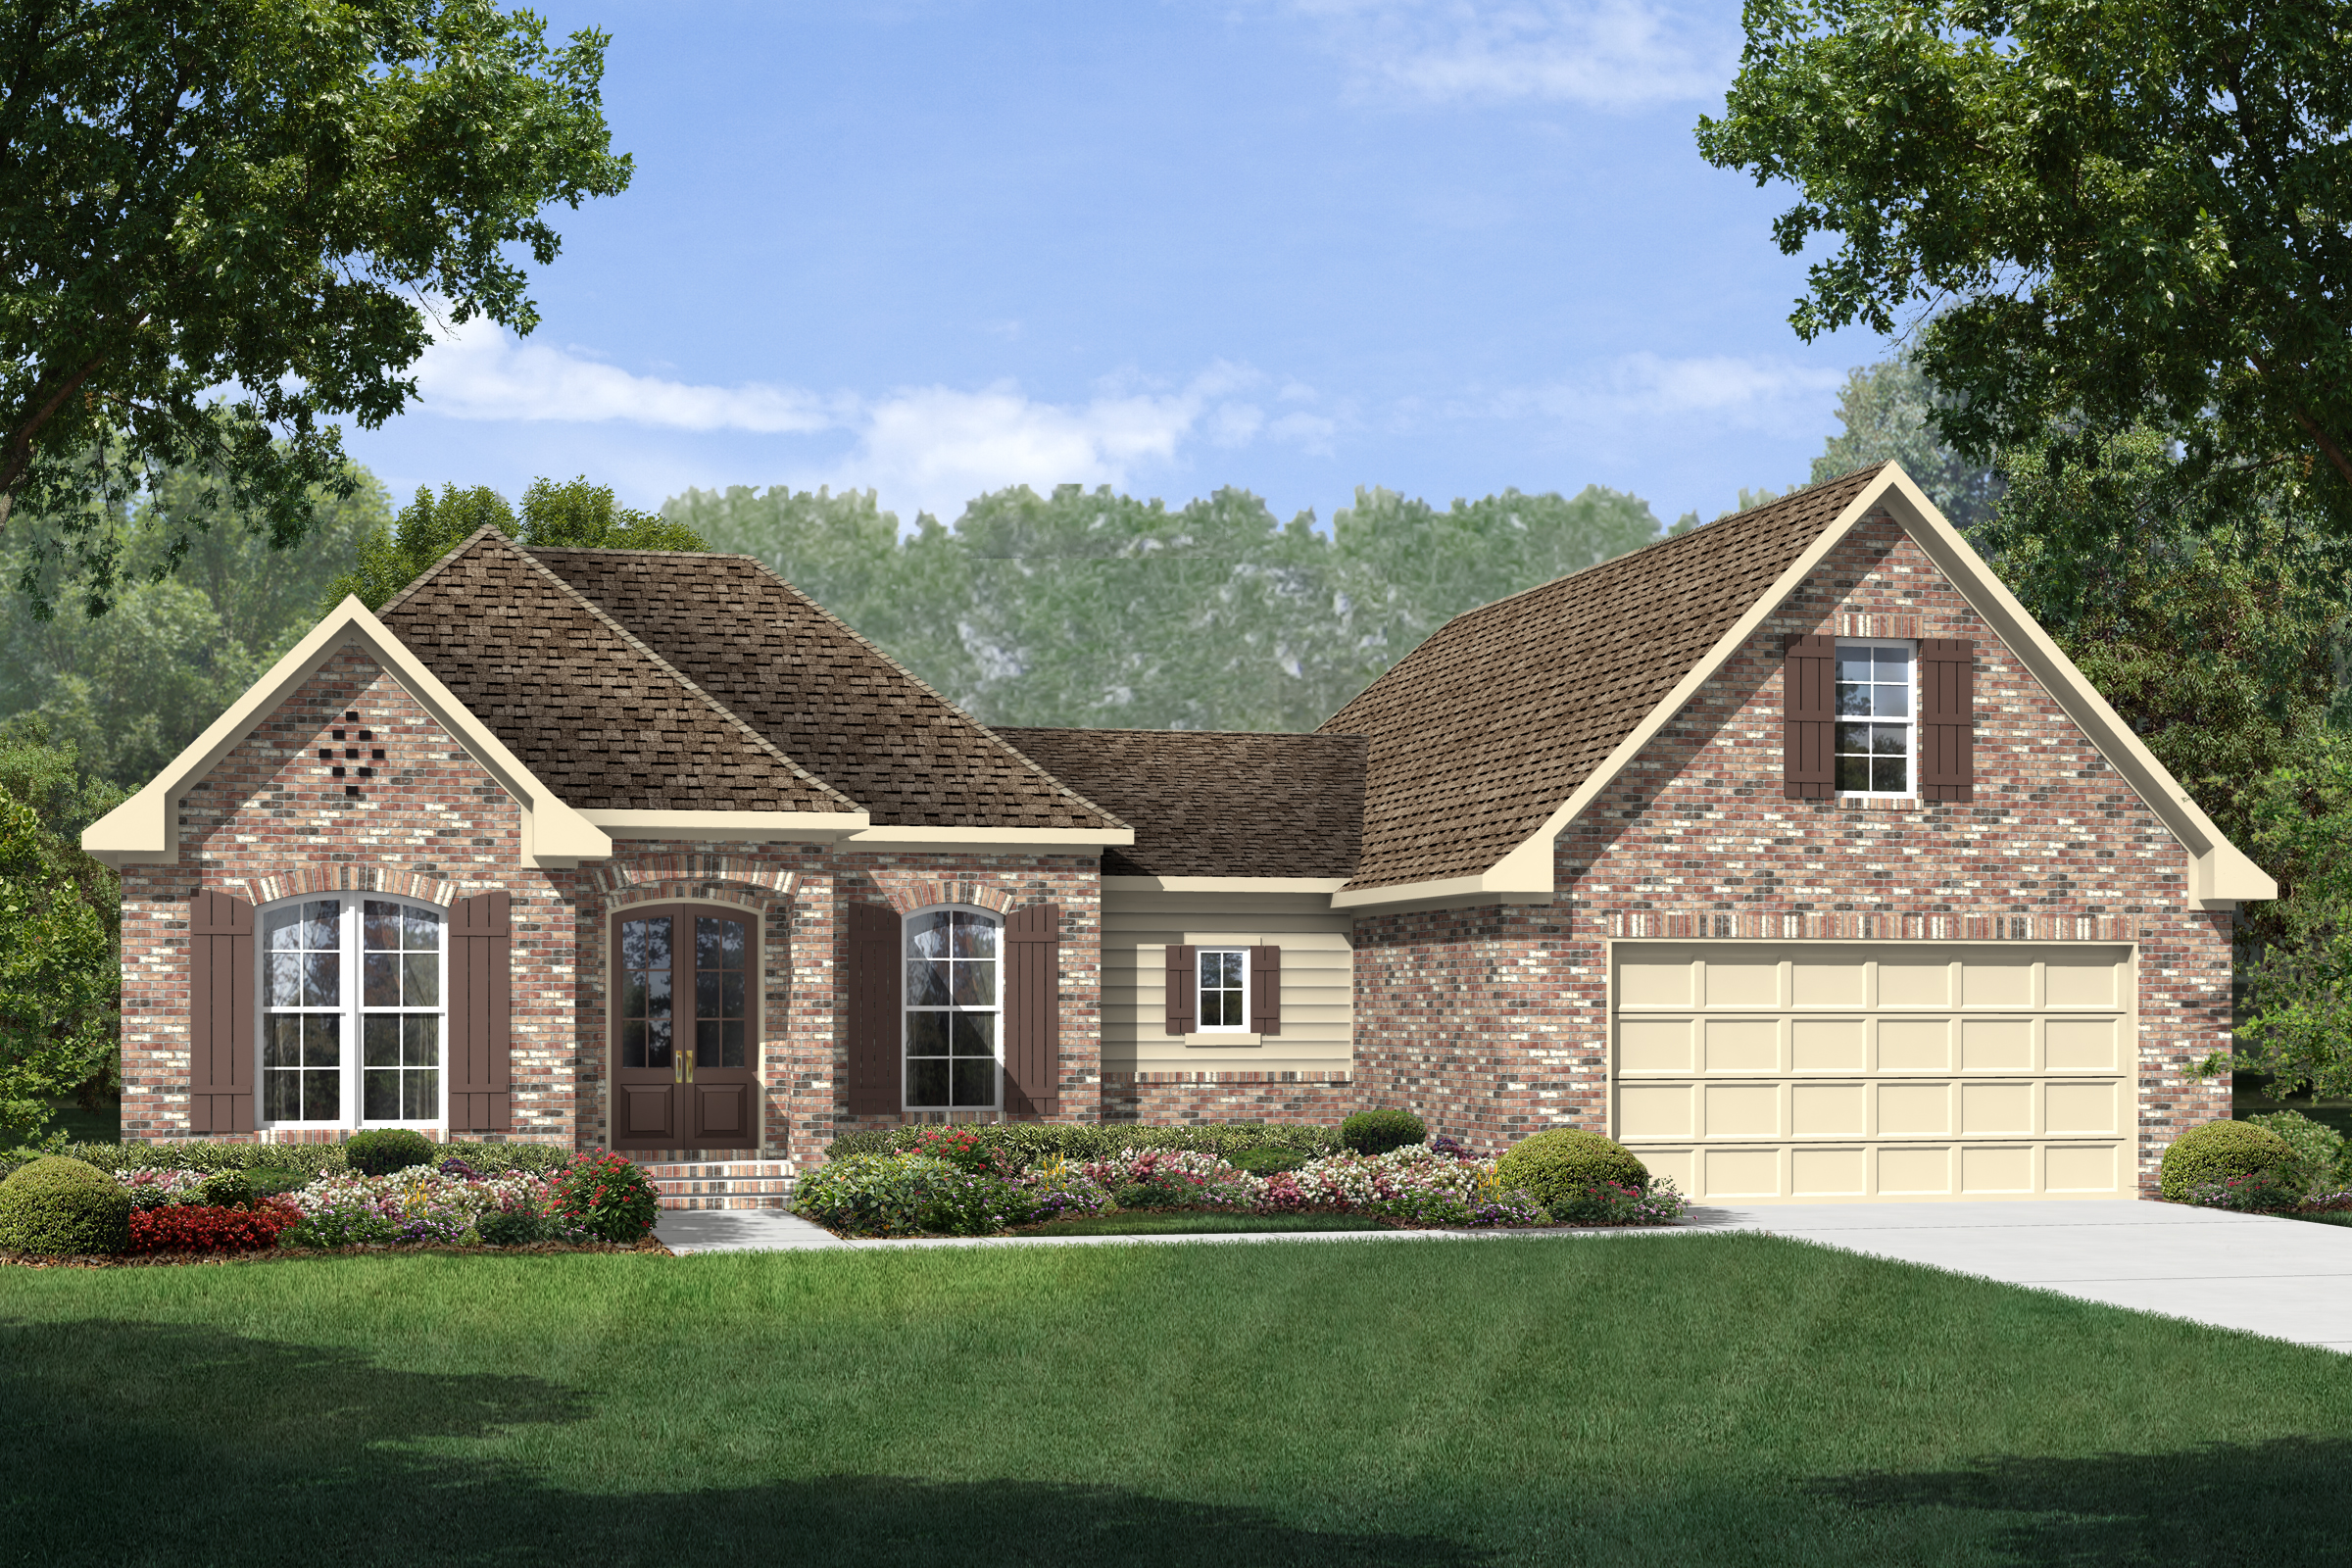 Country house plan 142 1145 3 bedrm 1884 sq ft home plan for Best garage plans